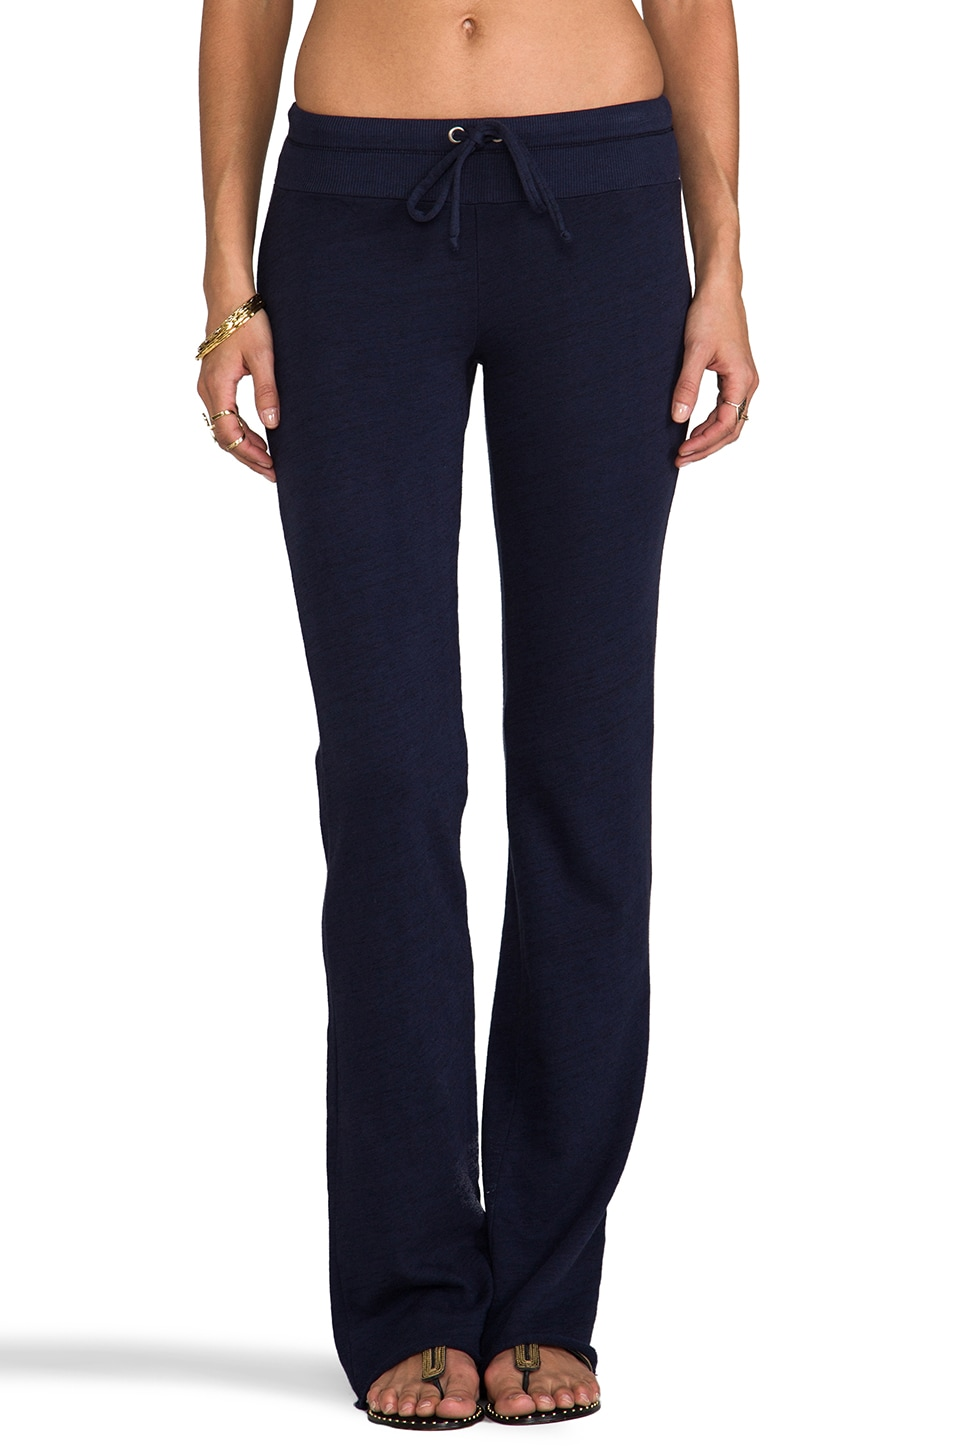 Splendid Space-Dyed Heather Active Flare Sweatpant in Navy